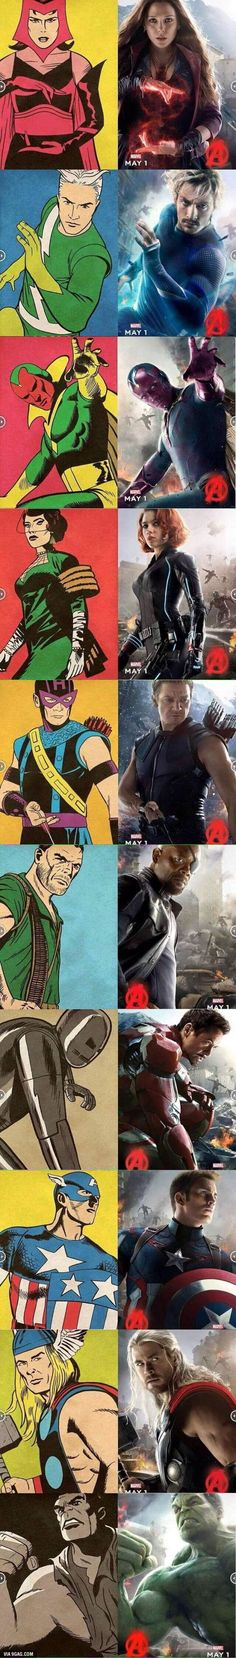 Original Avengers compared to the movie posters